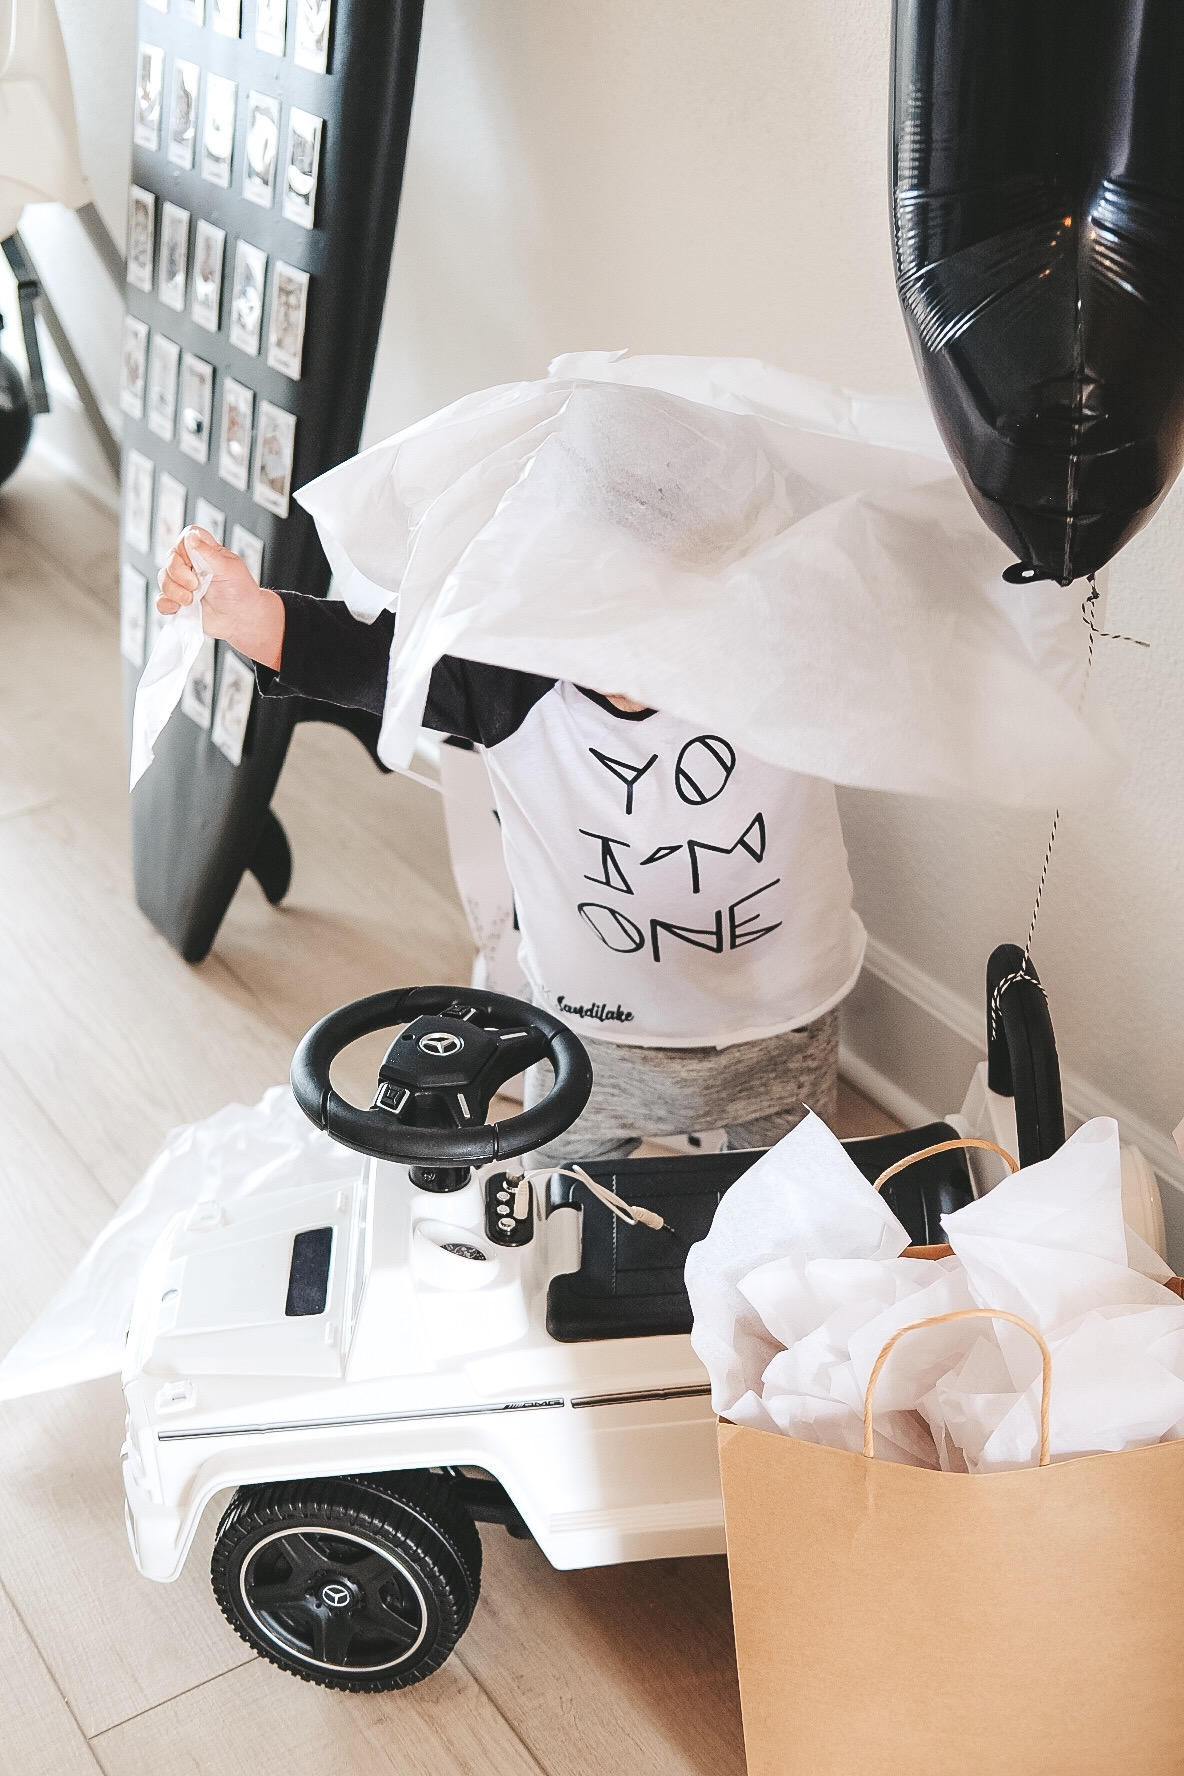 Modern surfer theme birthday party.  Black and white birthday party.  Baby boy frist birthday party. White G Wagon ride along car for 1 year old birthday gift. Yo I'm One shirt for babies first bday.